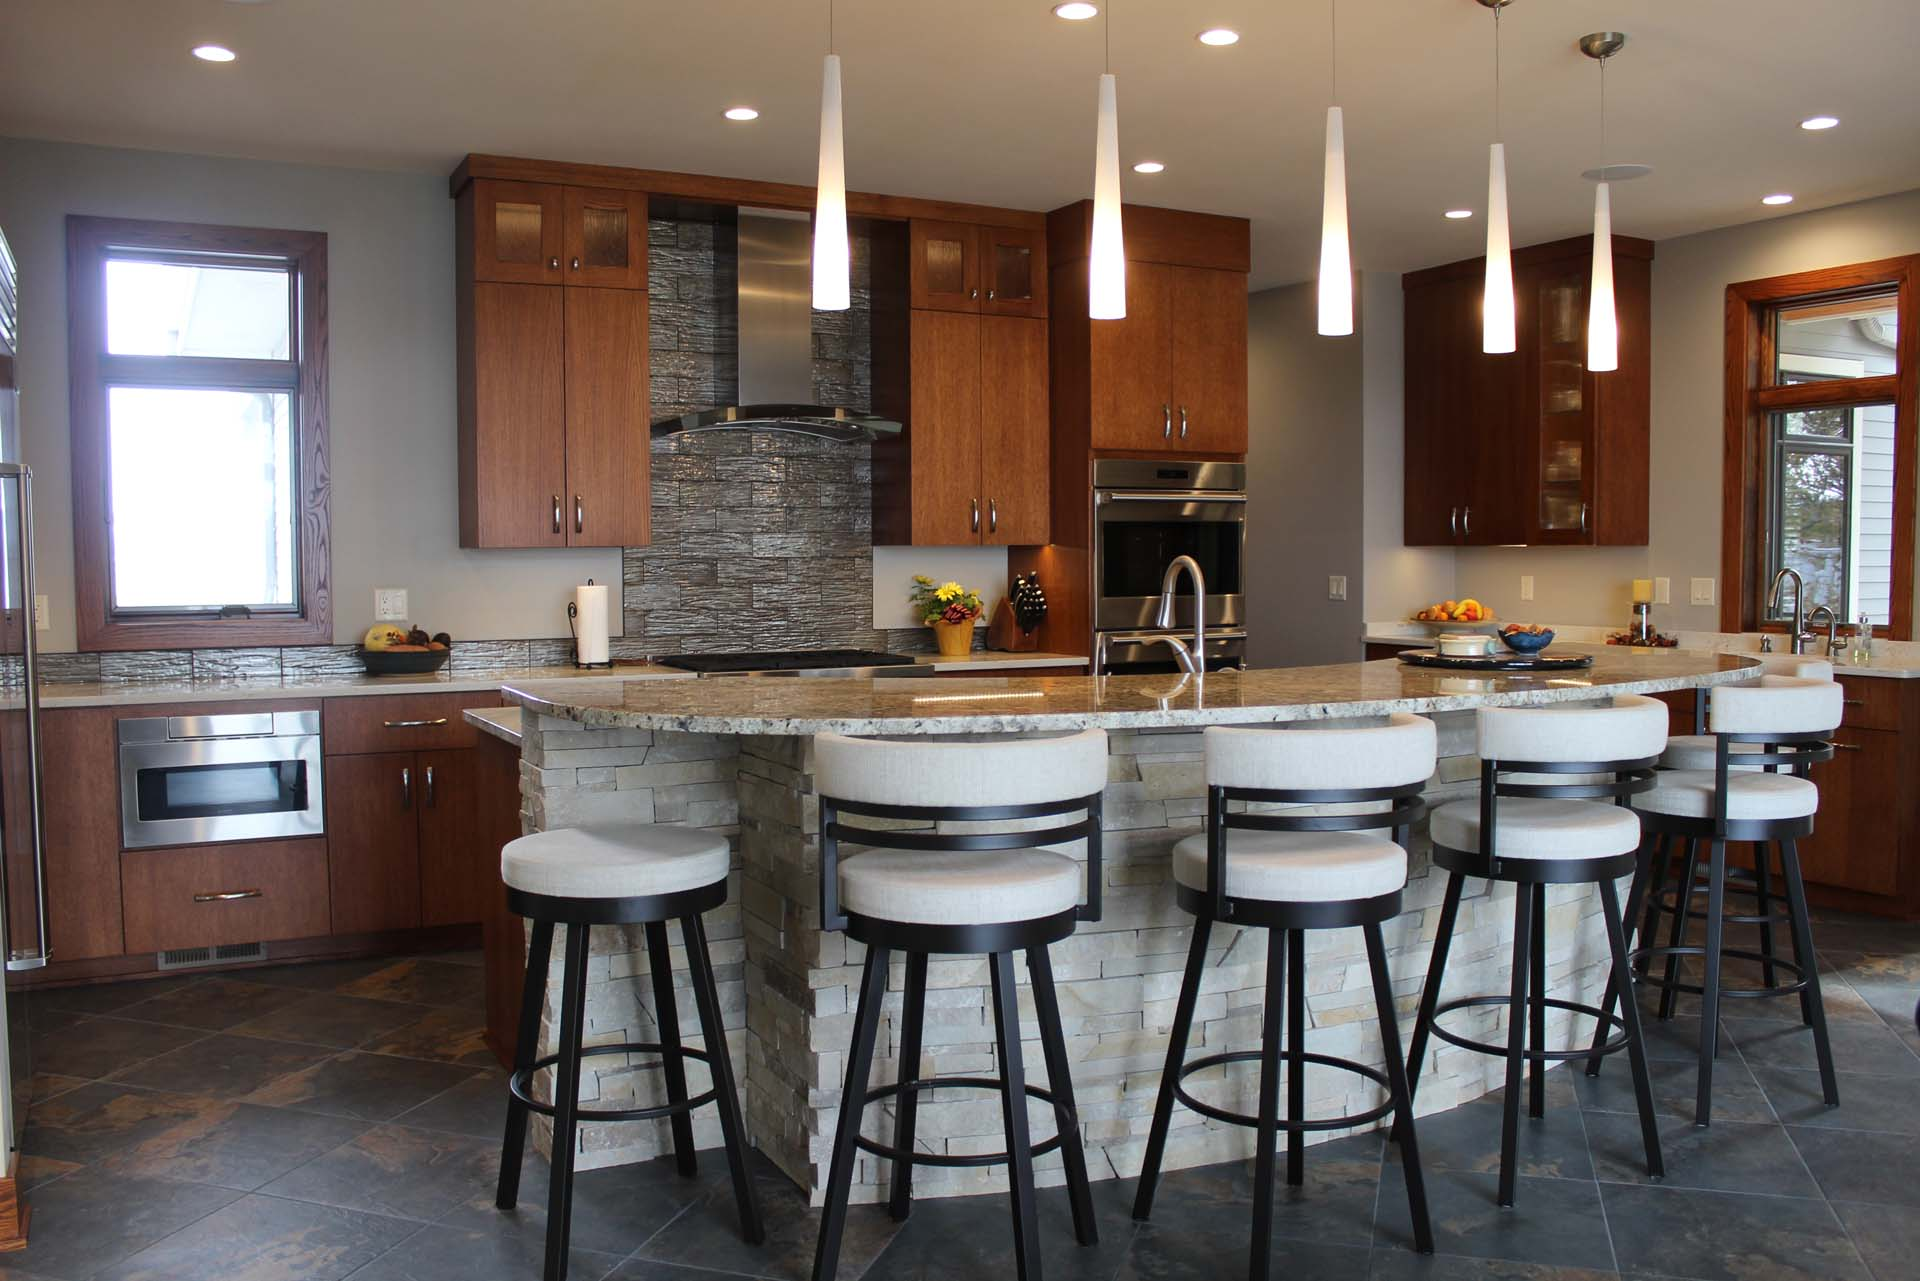 RMH_Golden_Lake_Contemporary_Kitchen.jpg